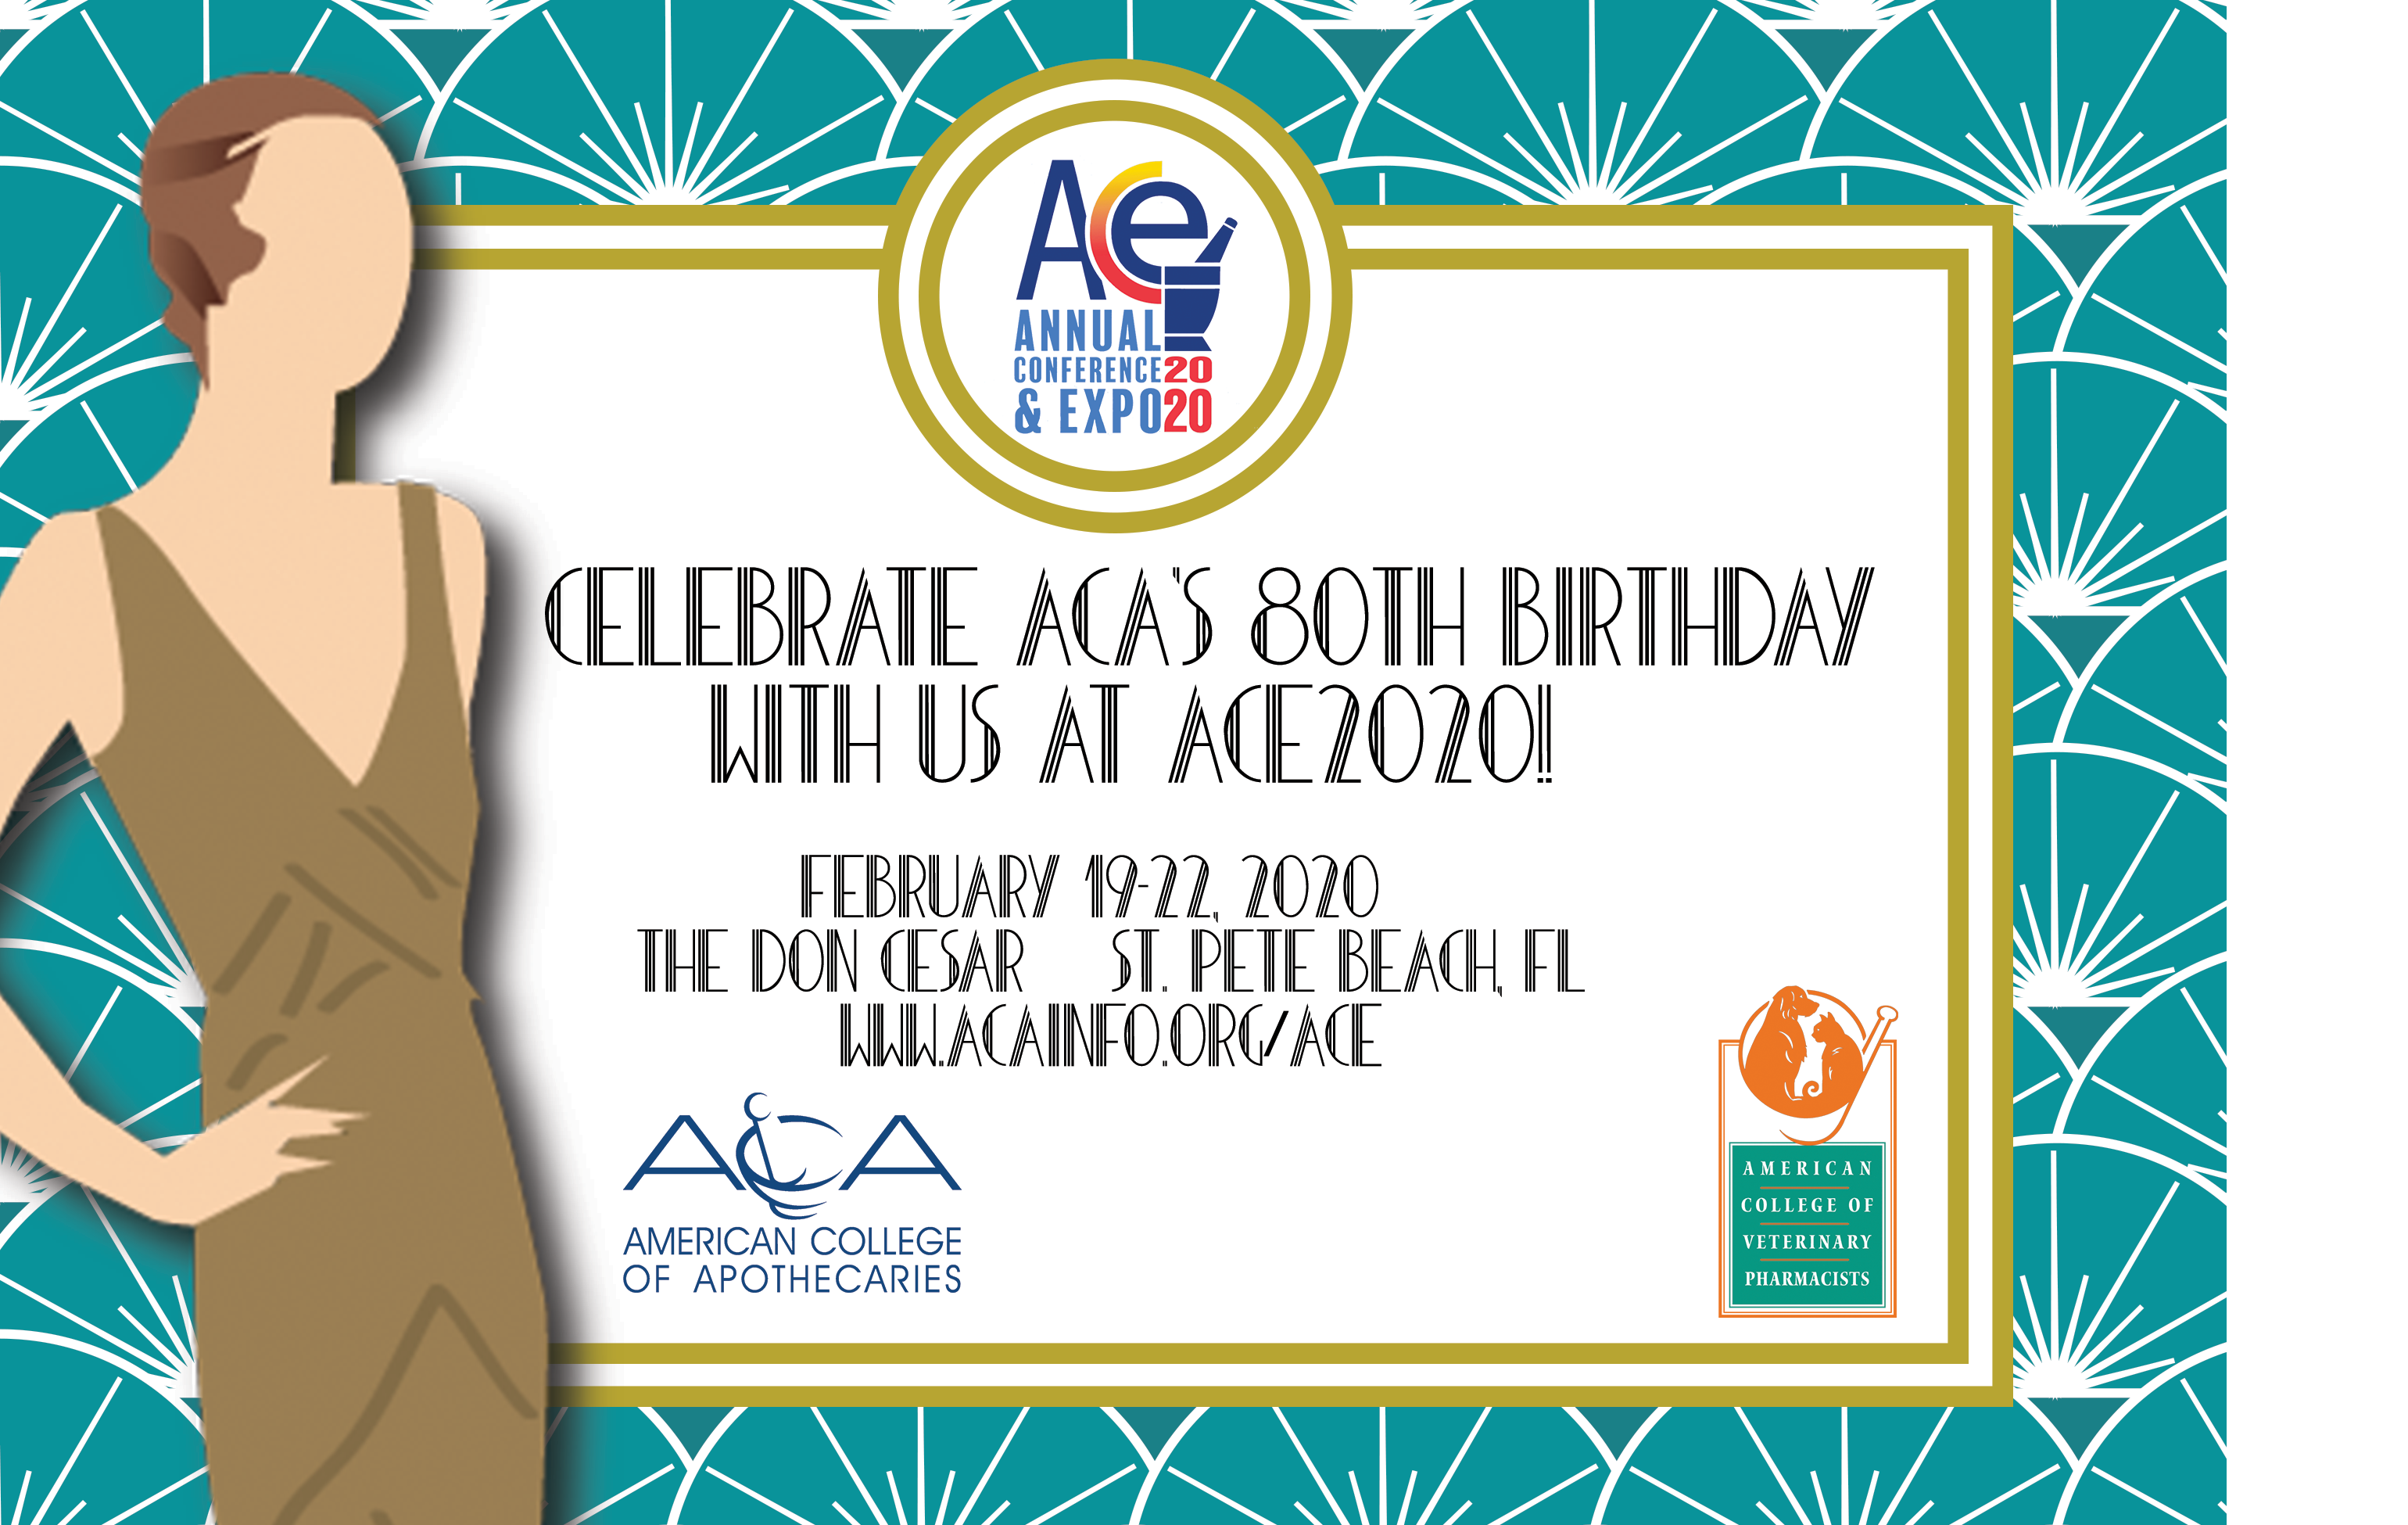 ACE 2020 Save the Date